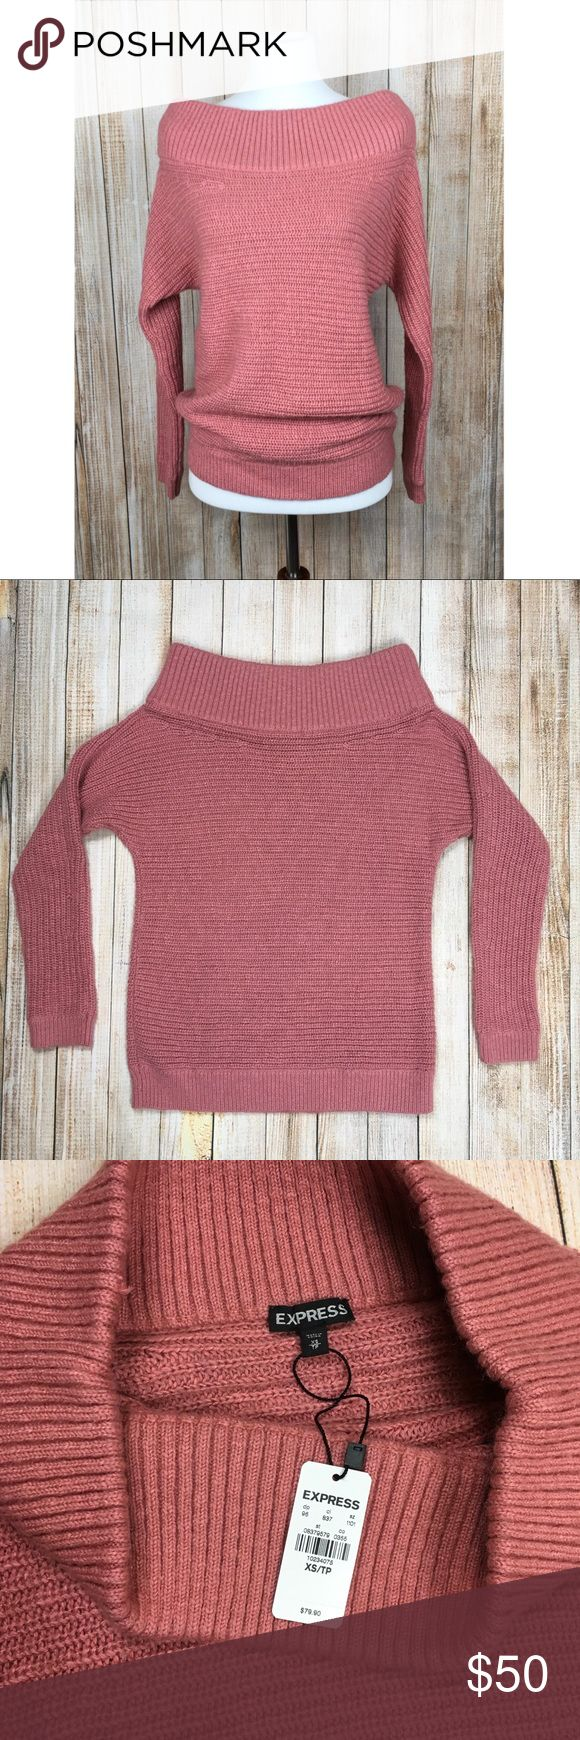 Express off the shoulder sweater Wool and mohair are included in this beautiful pink off the shoulder sweater. No flaws. Pair with almost anything! Approximate measurements provided in photos. OFFERS ENCOURAGED!  Tags: pretty, girly, flirty, fall, winter, weekend, statement, mauve, rose Express Sweaters